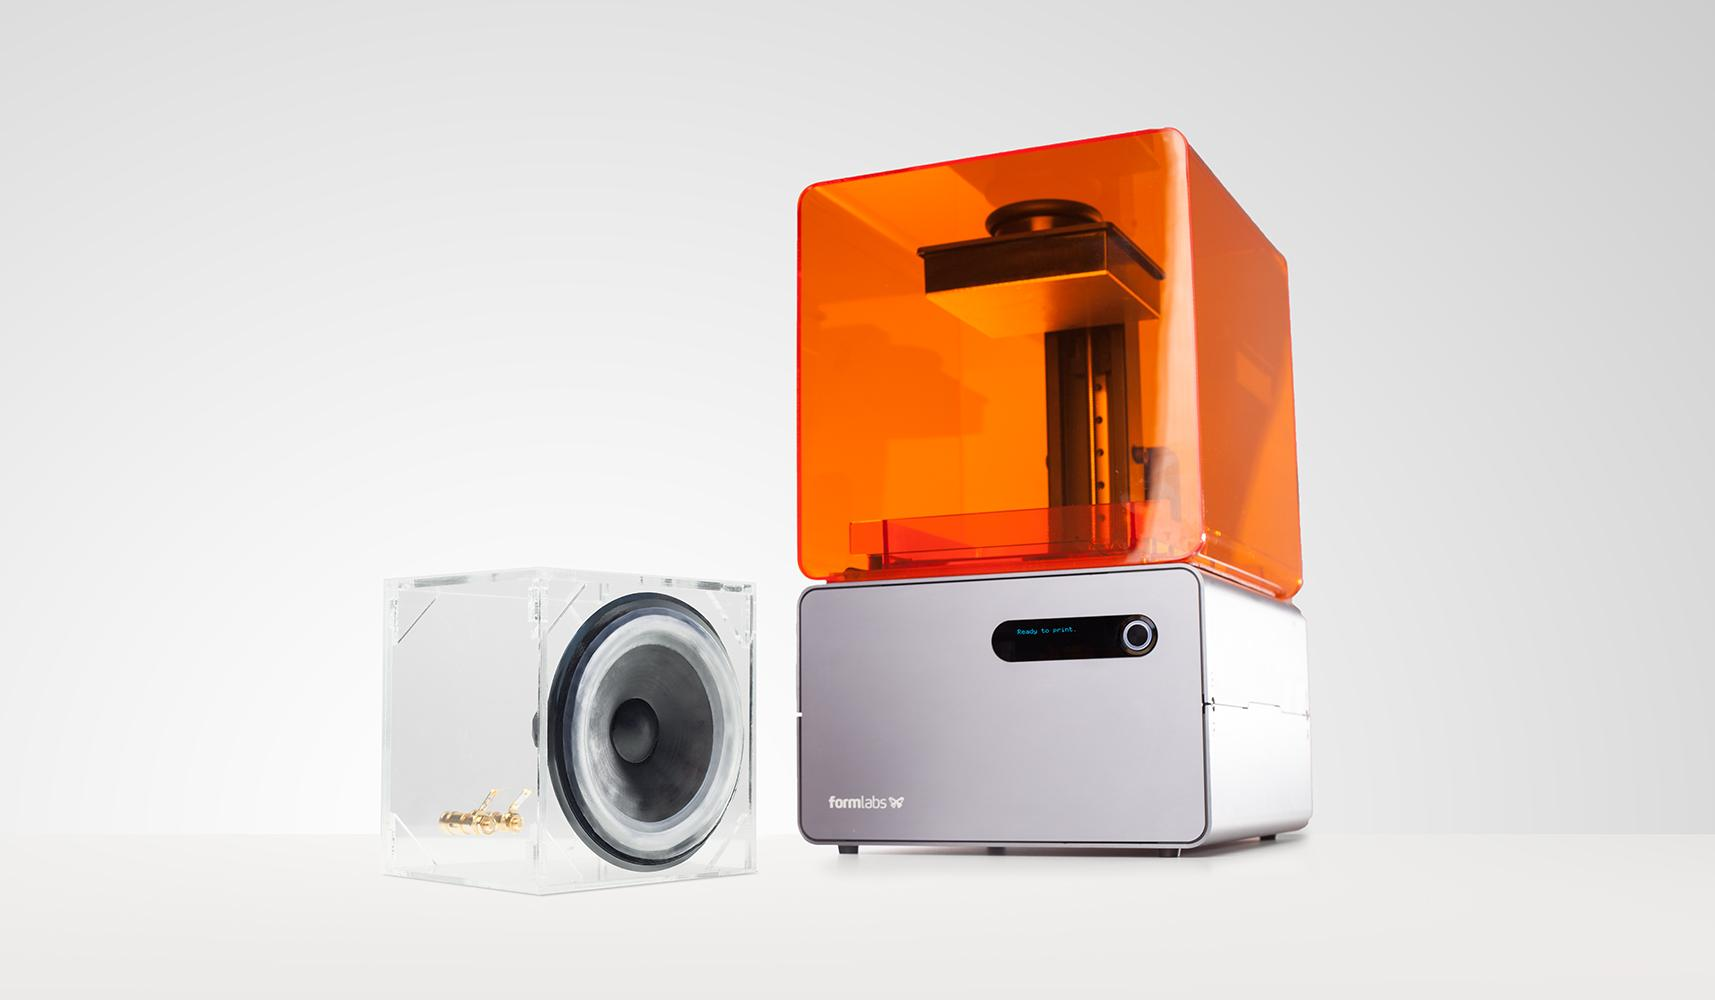 Form 1+ 3D Printer Just Got Draft Mode & Smart Supports - Enables the 3D Printing of a Working Speaker